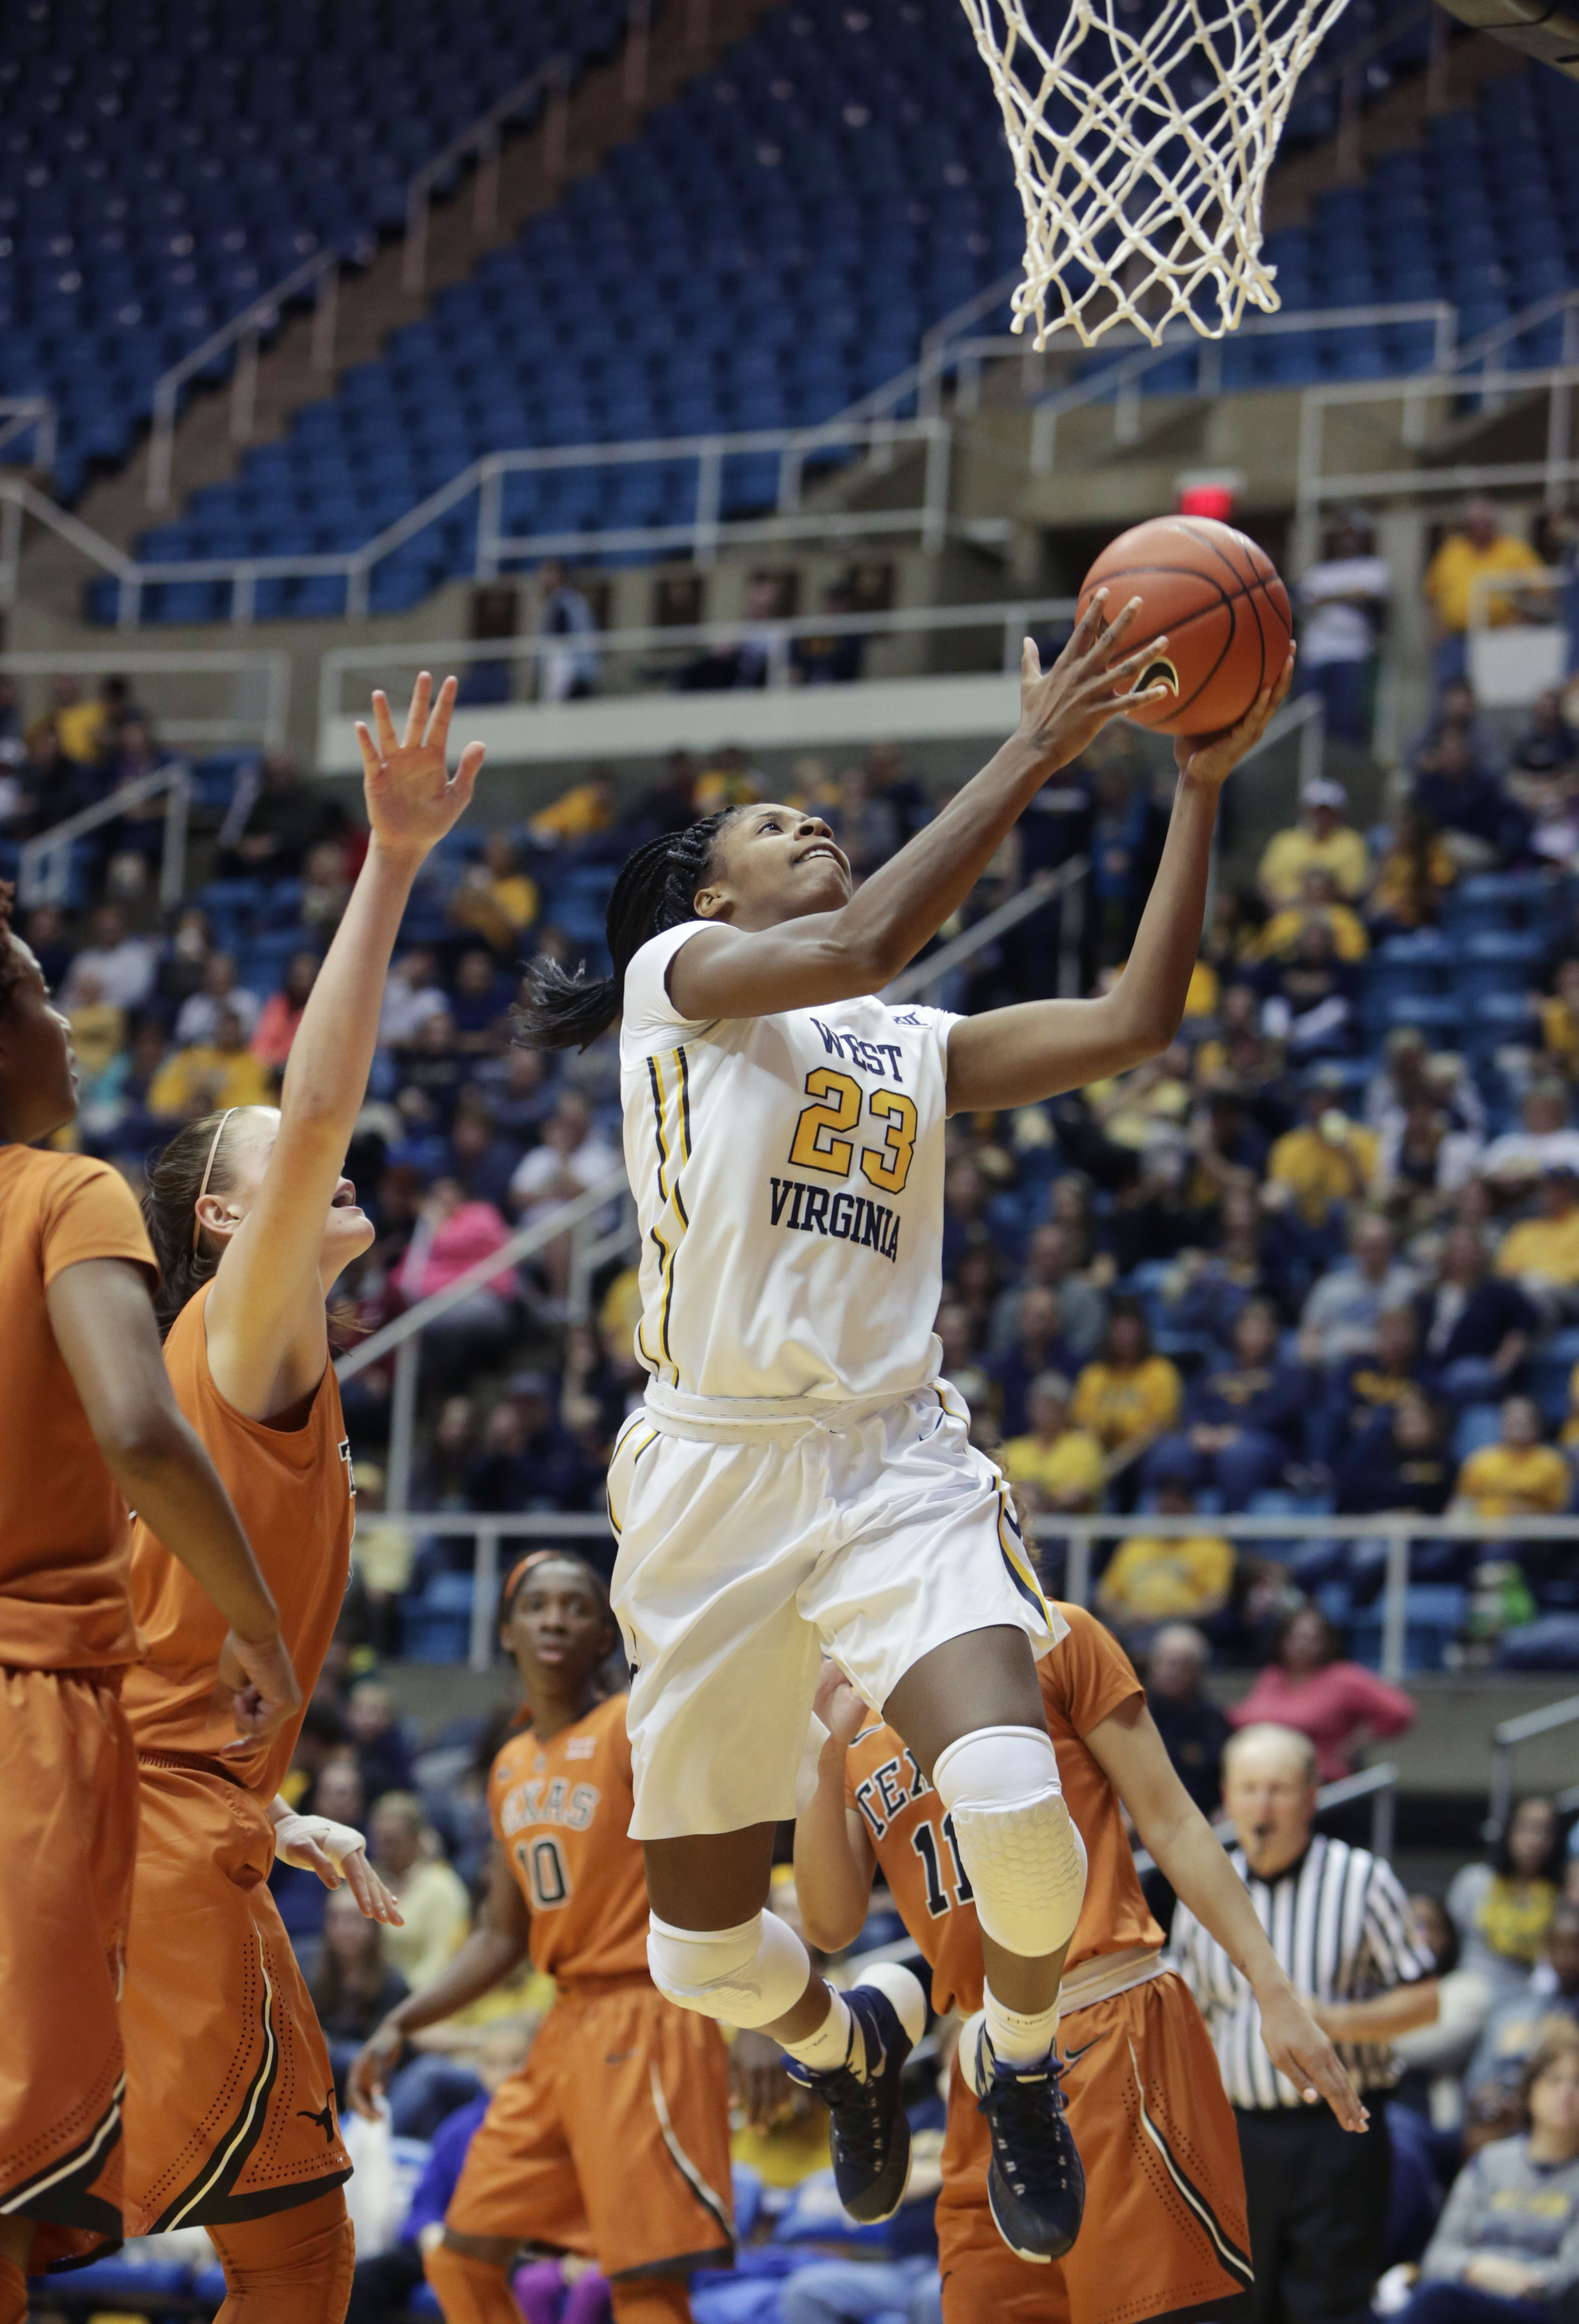 West Virginia guard Bria Holmes (23) scores a basket after driving by Texas center Kelsey Lang (40) during the third period of an NCAA college basketball game, Wednesday, Dec, 30, 2015, in Morgantown, W.Va. (AP Photo/Raymond Thompson)